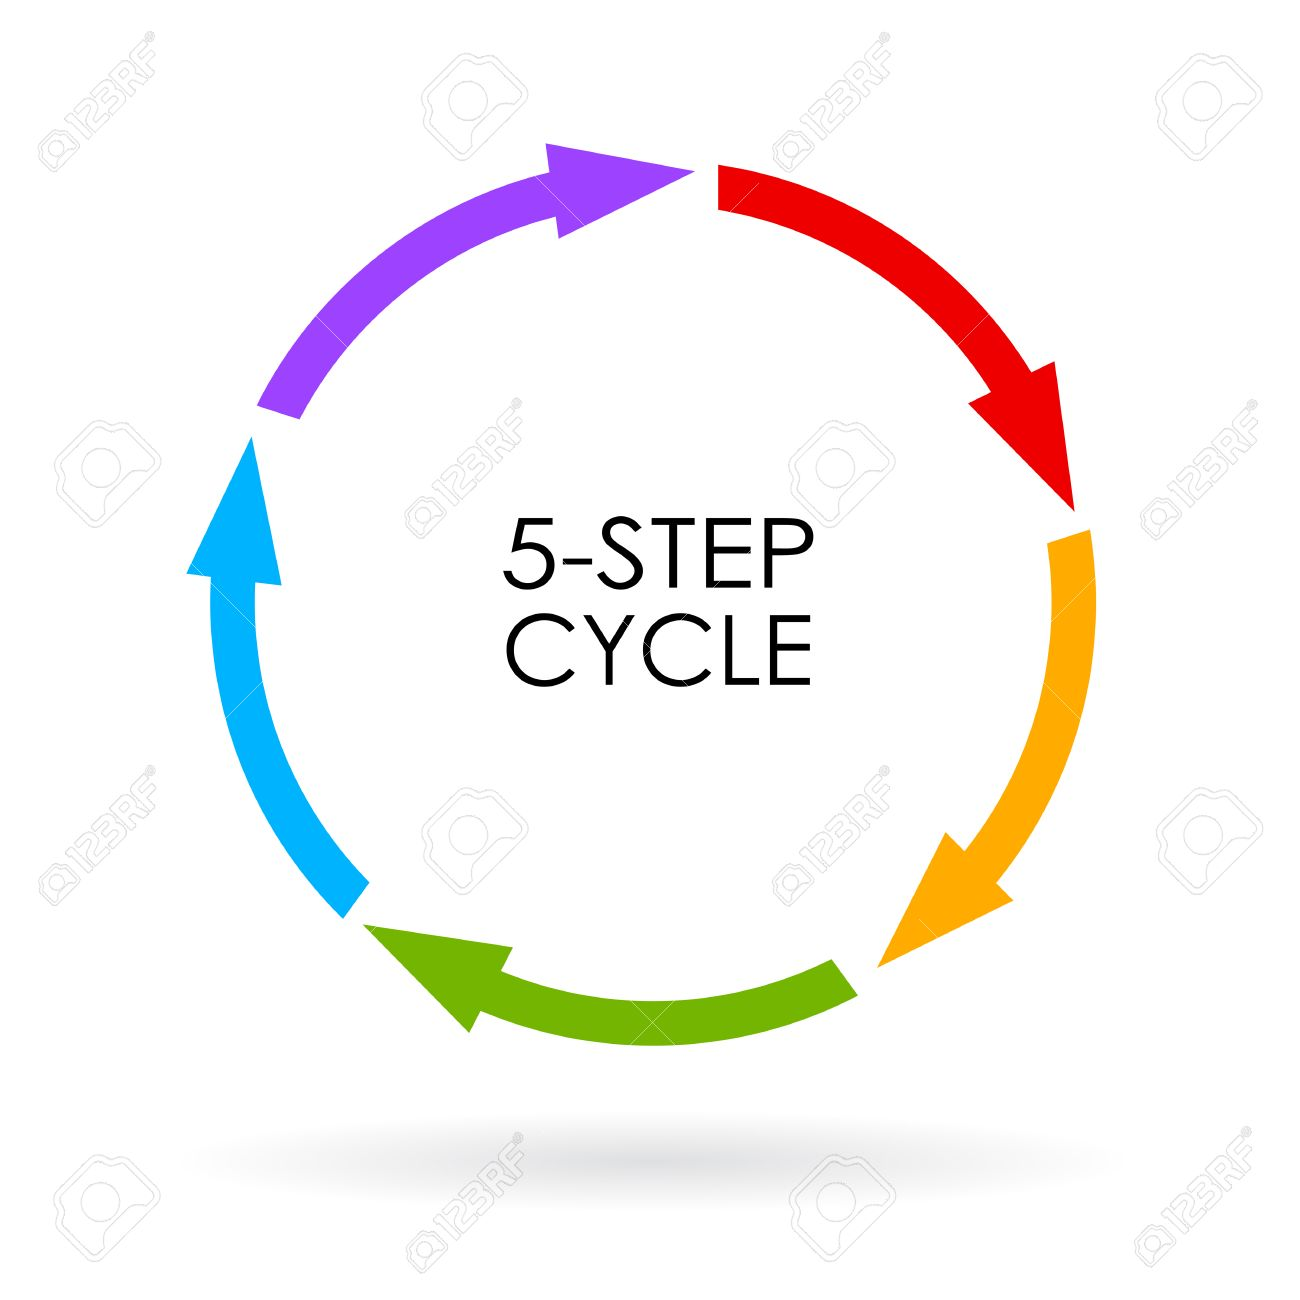 hight resolution of 5 step arrows cycle diagram stock vector 55145534